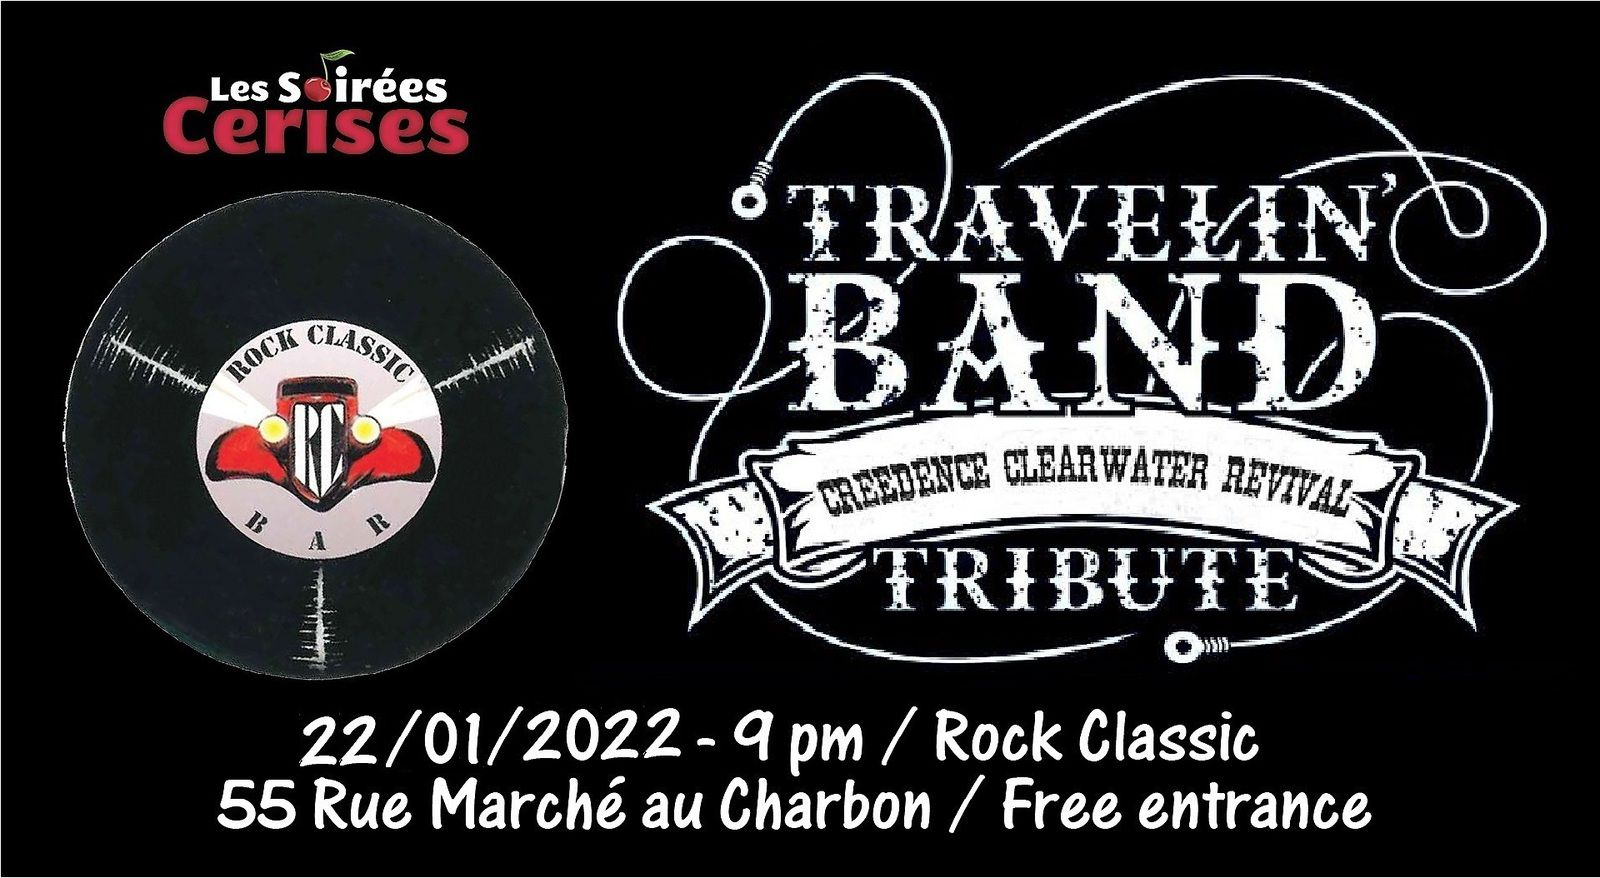 🎵 Travelin' band (CREEDENCE CLEARWATER REVIVAL tribute band) @ Rock Classic - 22/01/2022